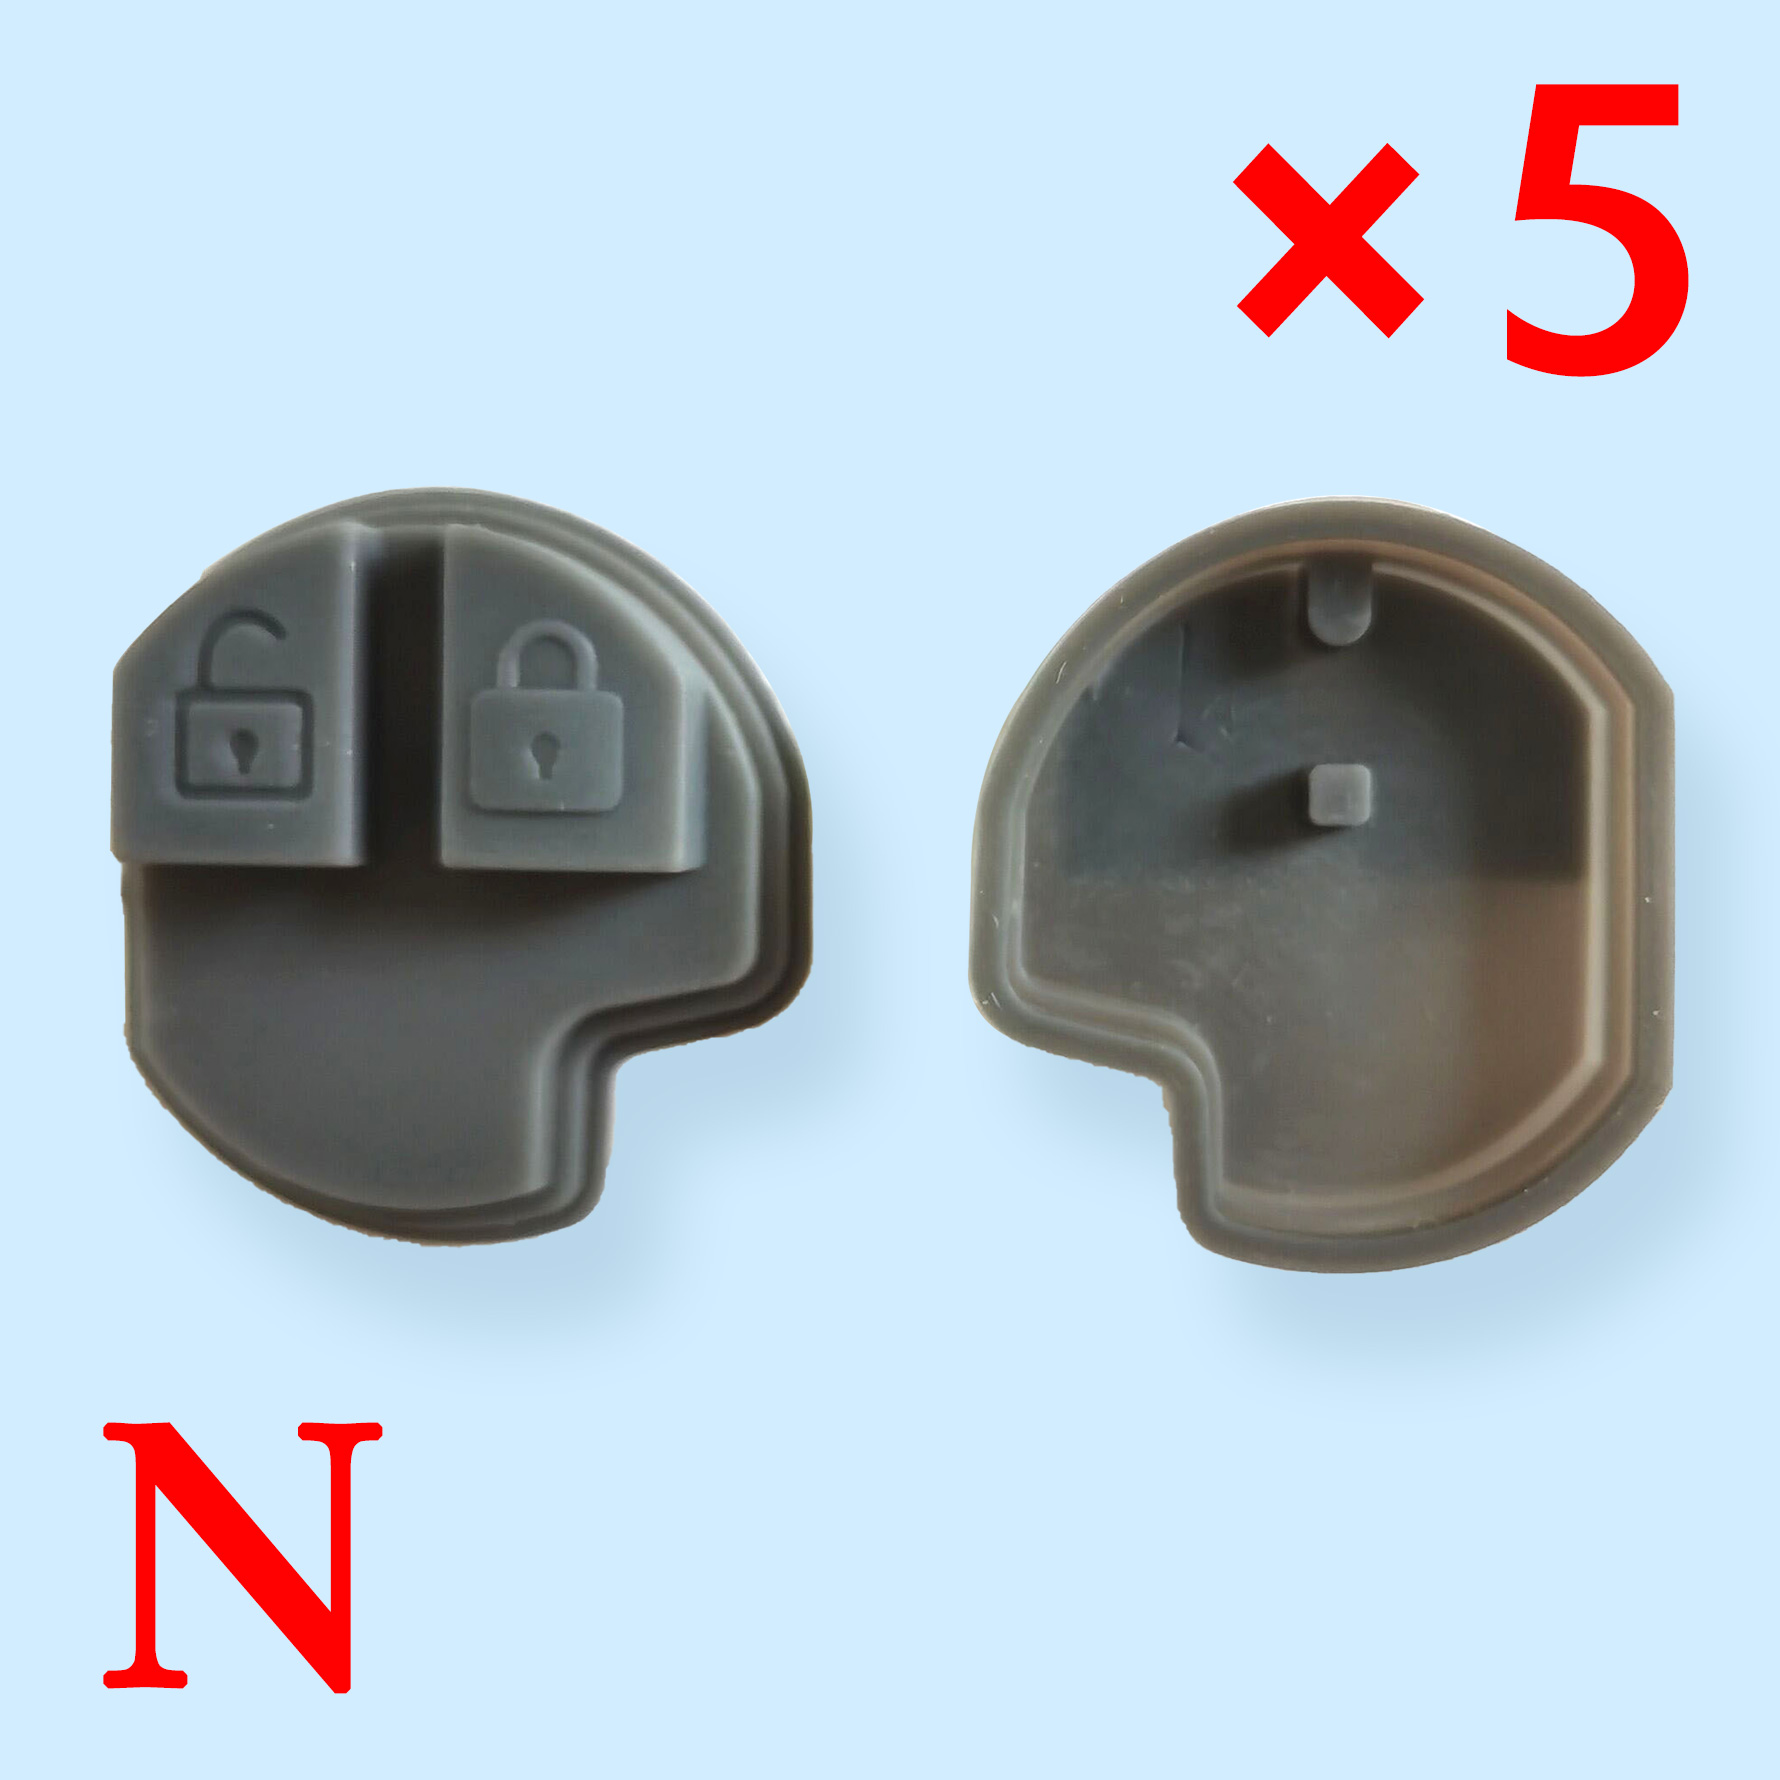 Rubber Pad  for Suzuki  - Pack of 5